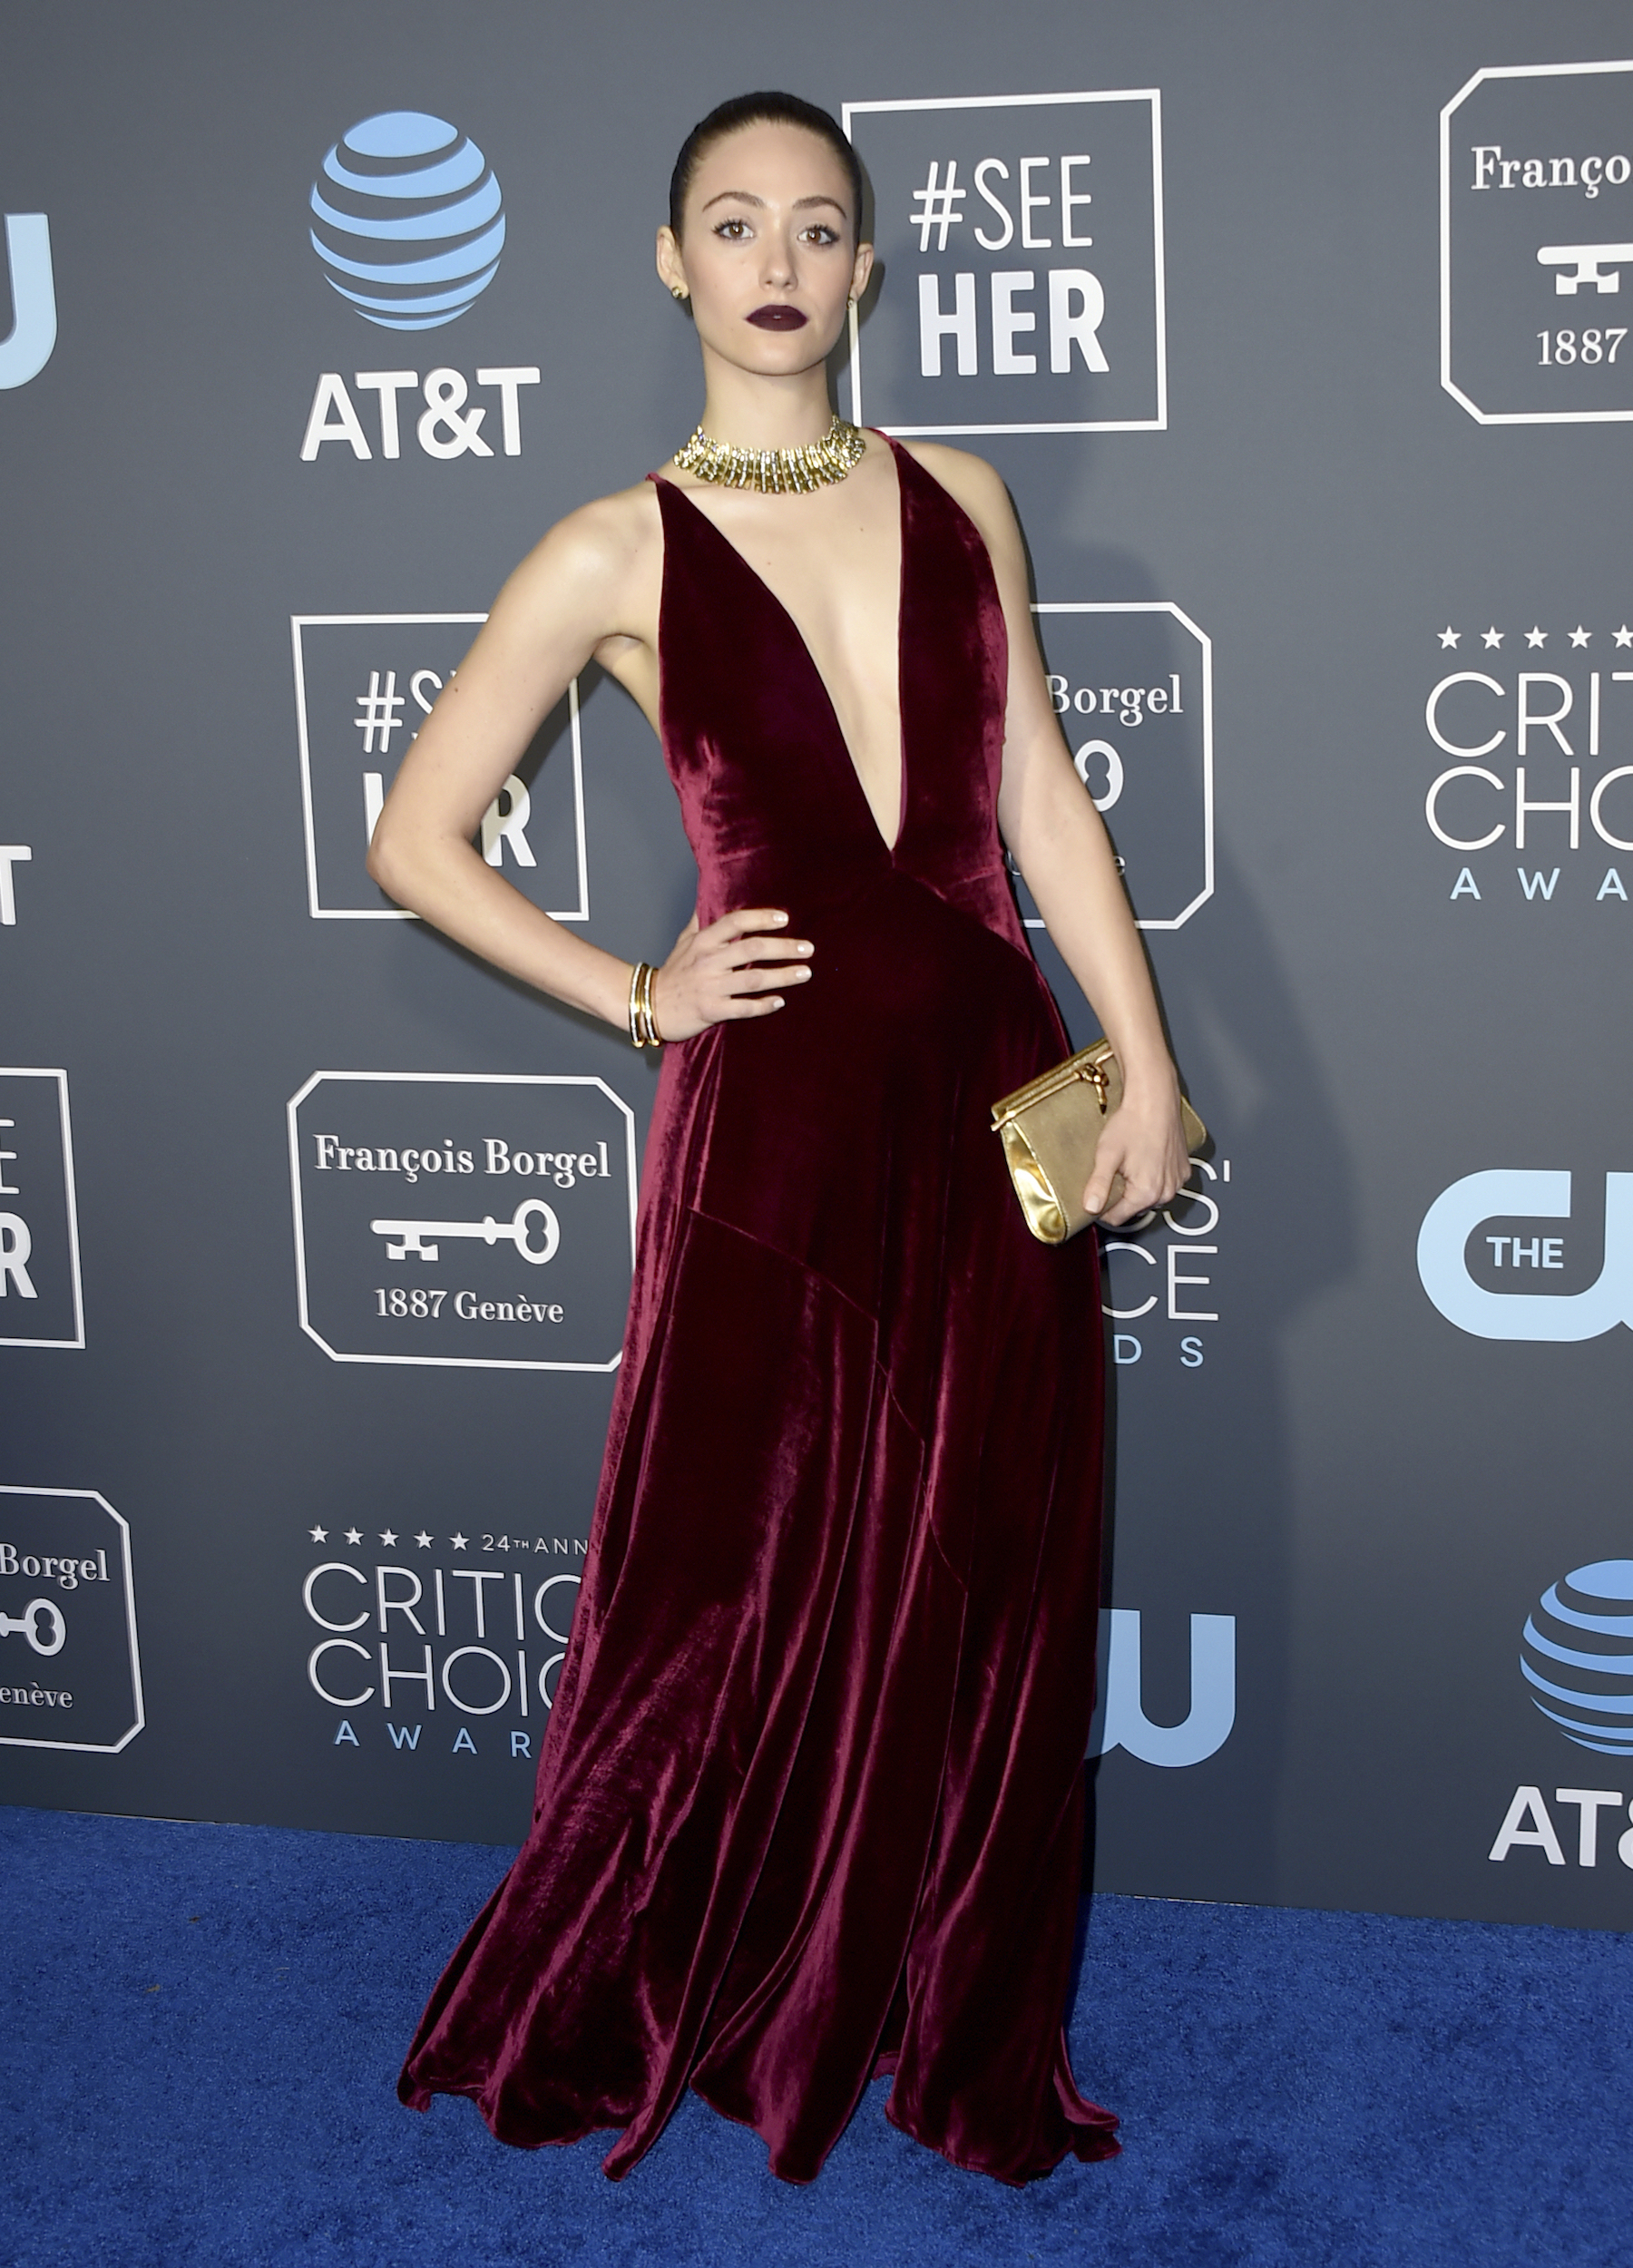 "<div class=""meta image-caption""><div class=""origin-logo origin-image ap""><span>AP</span></div><span class=""caption-text"">Emmy Rossum arrives at the 24th annual Critics' Choice Awards on Sunday, Jan. 13, 2019, at the Barker Hangar in Santa Monica, Calif. (Jordan Strauss/Invision/AP)</span></div>"